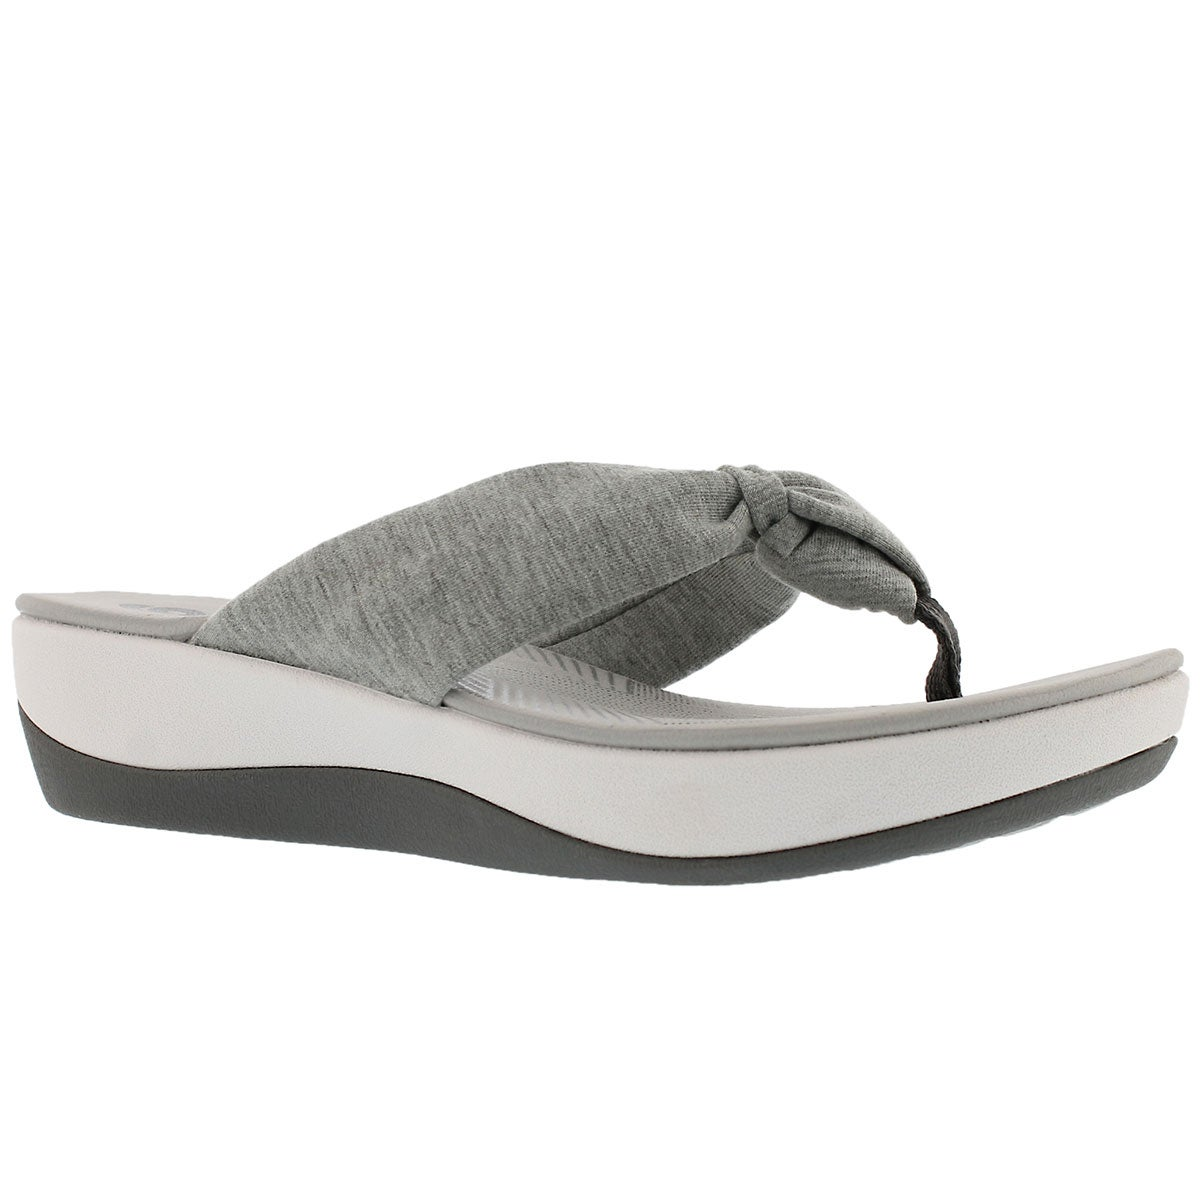 Women's ARLA GLISON grey thong wedge sandals